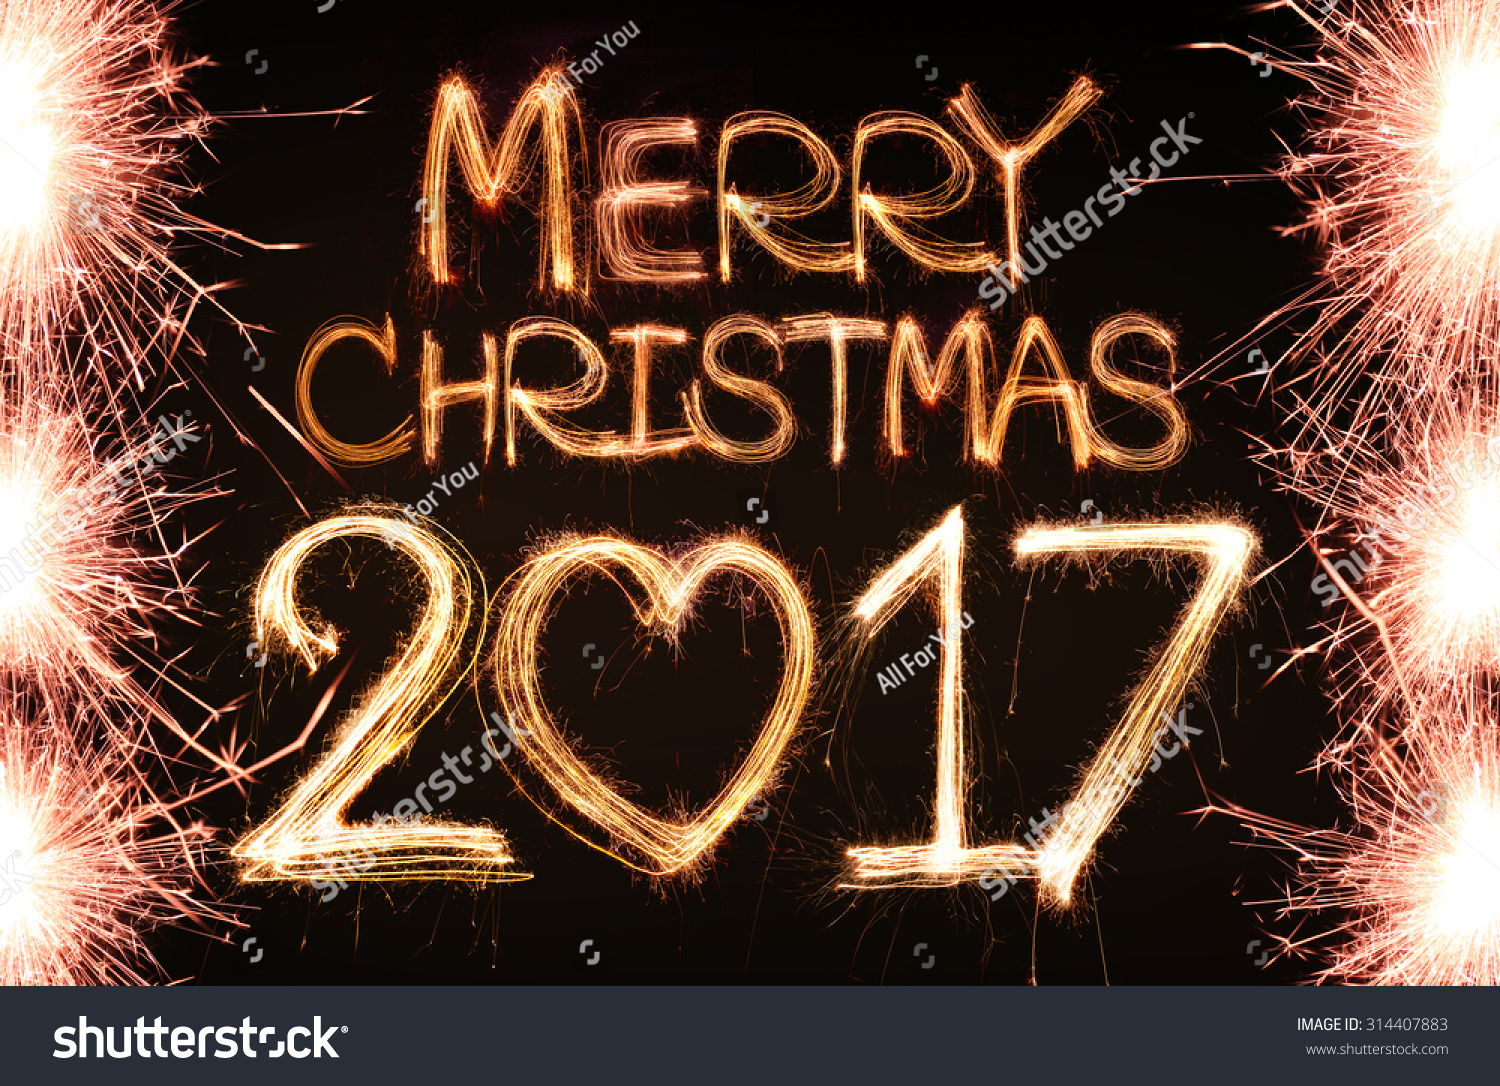 Best Merry Christmas 2017 Wishes  Happy New Year 2018